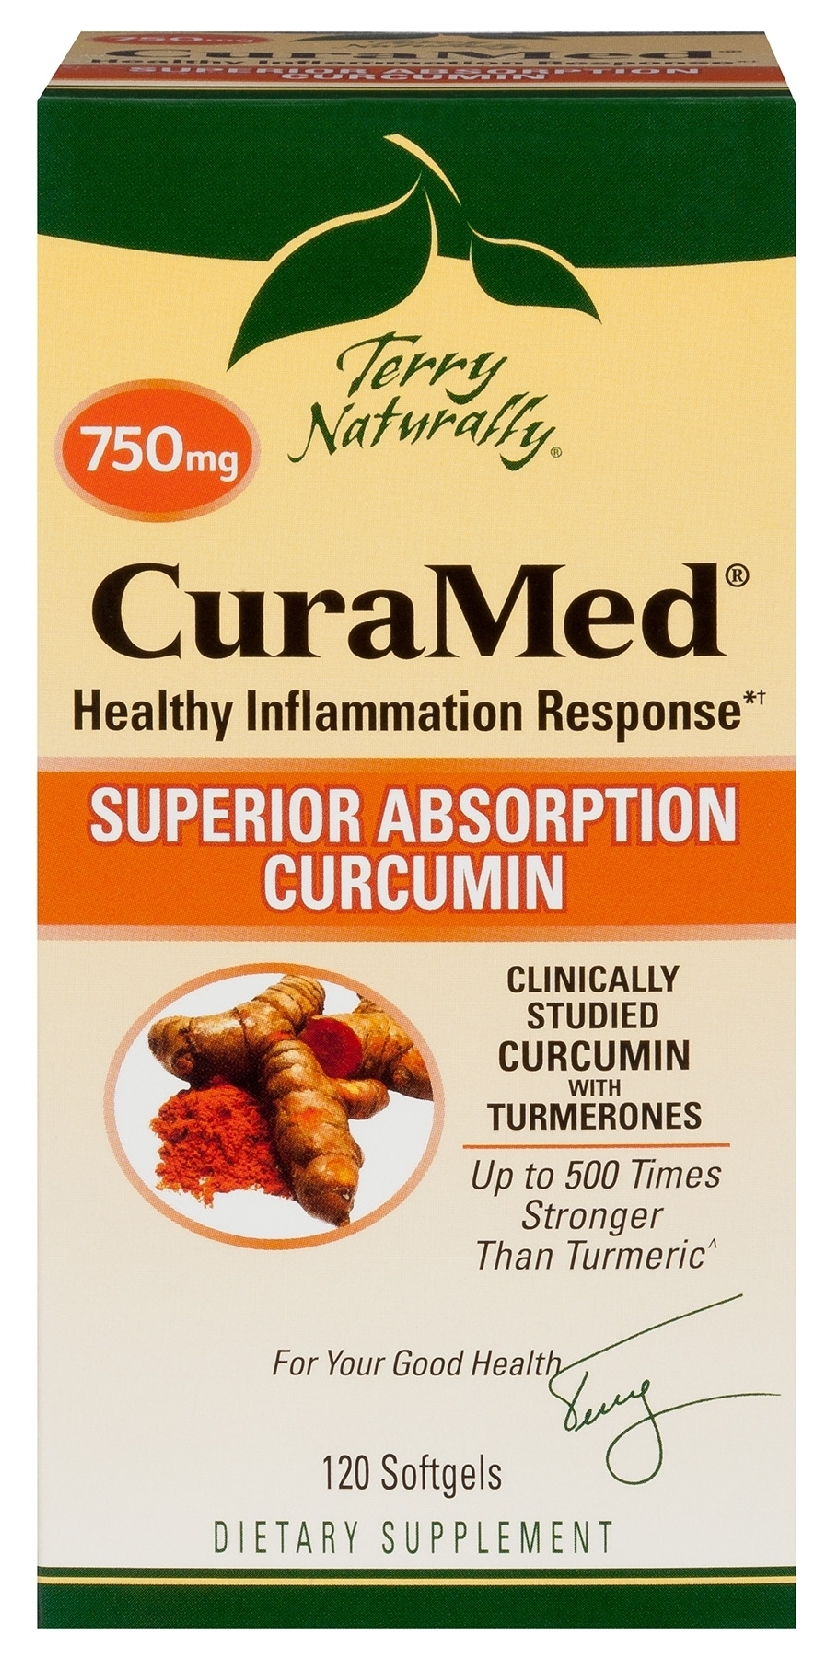 Terry Naturally CuraMed 750 mg 30 sgels by EuroPharma